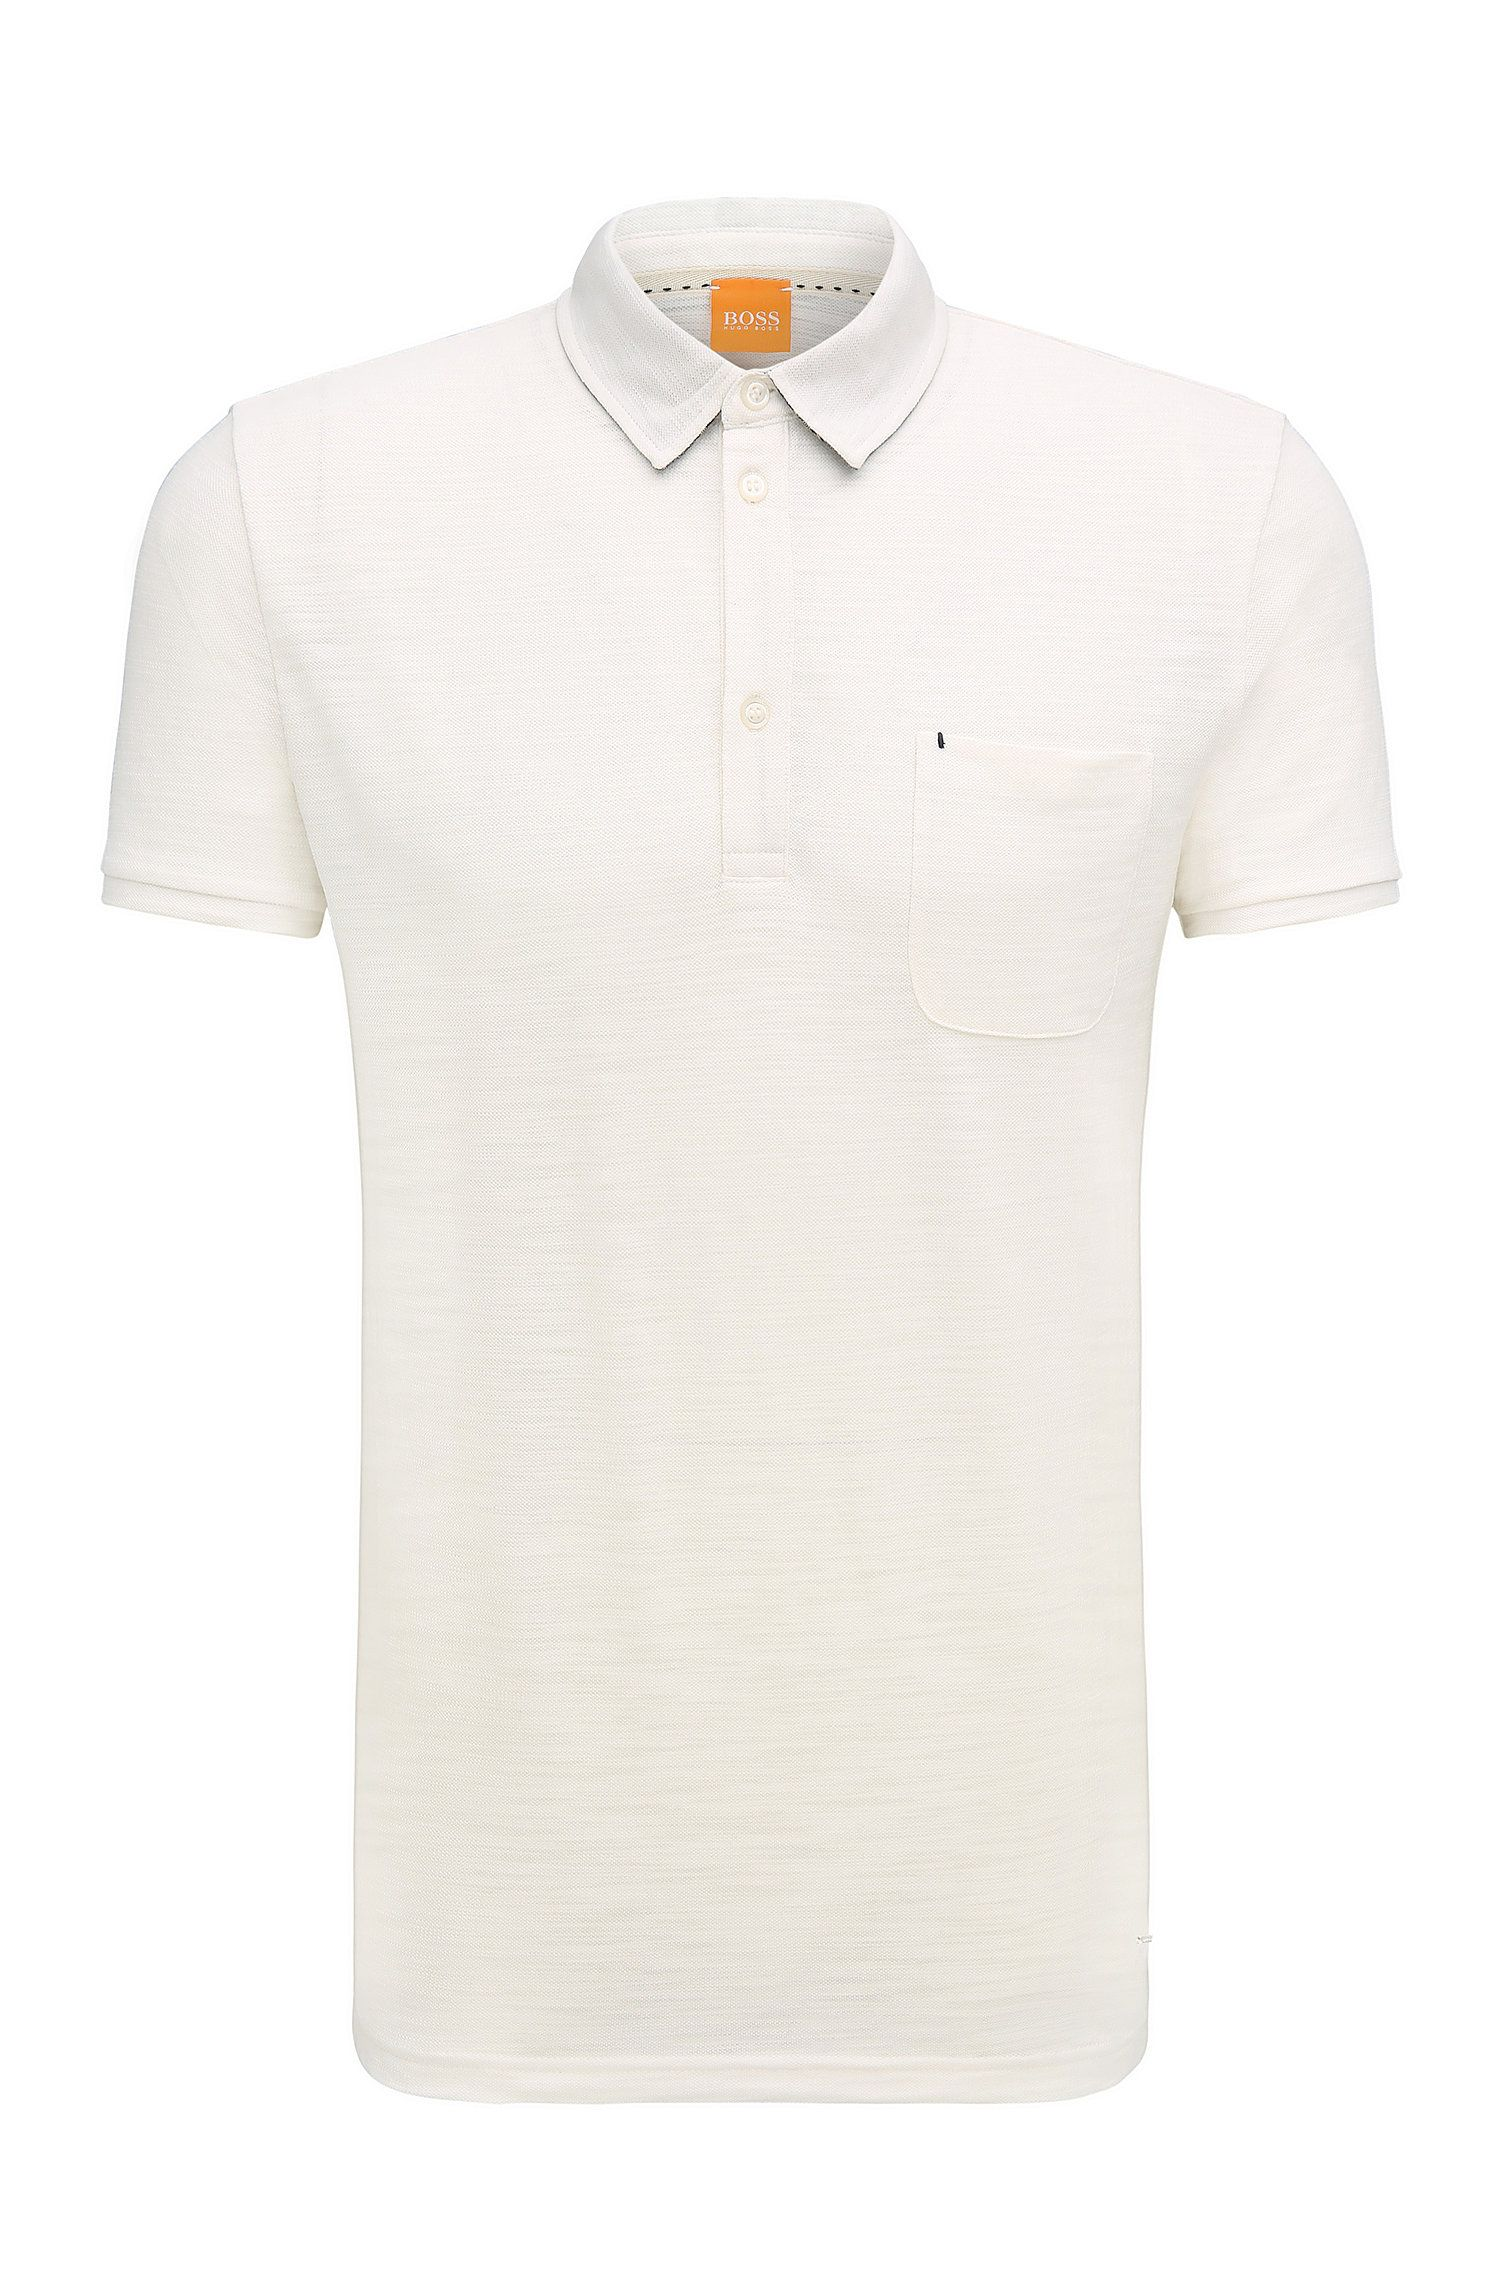 Polo relaxed fit en punto sencillo flameado